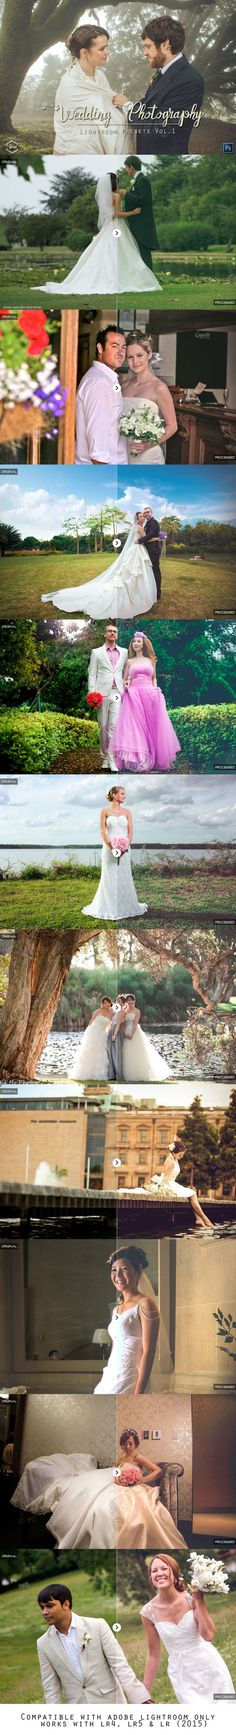 100 Wedding Photography Presets Vo.1 by Symufa on Creative Market